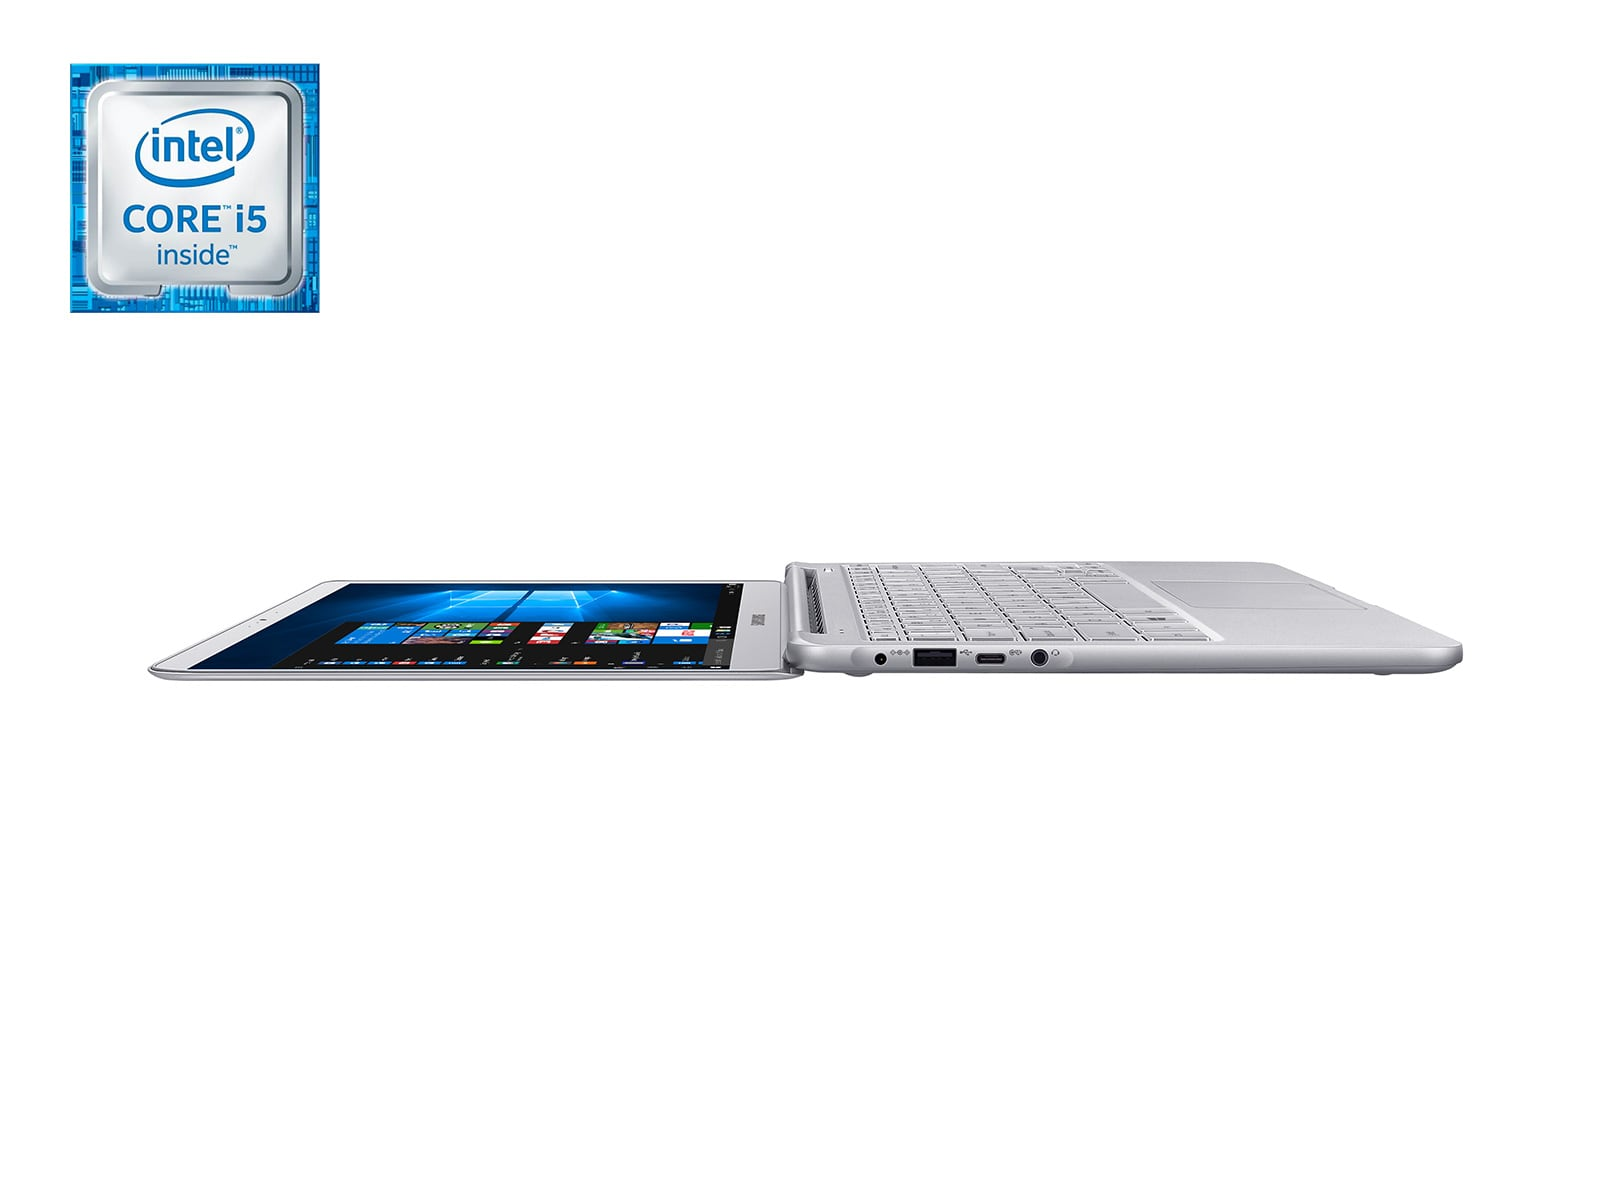 Samsung Notebook 9 NP900X3N-K01US